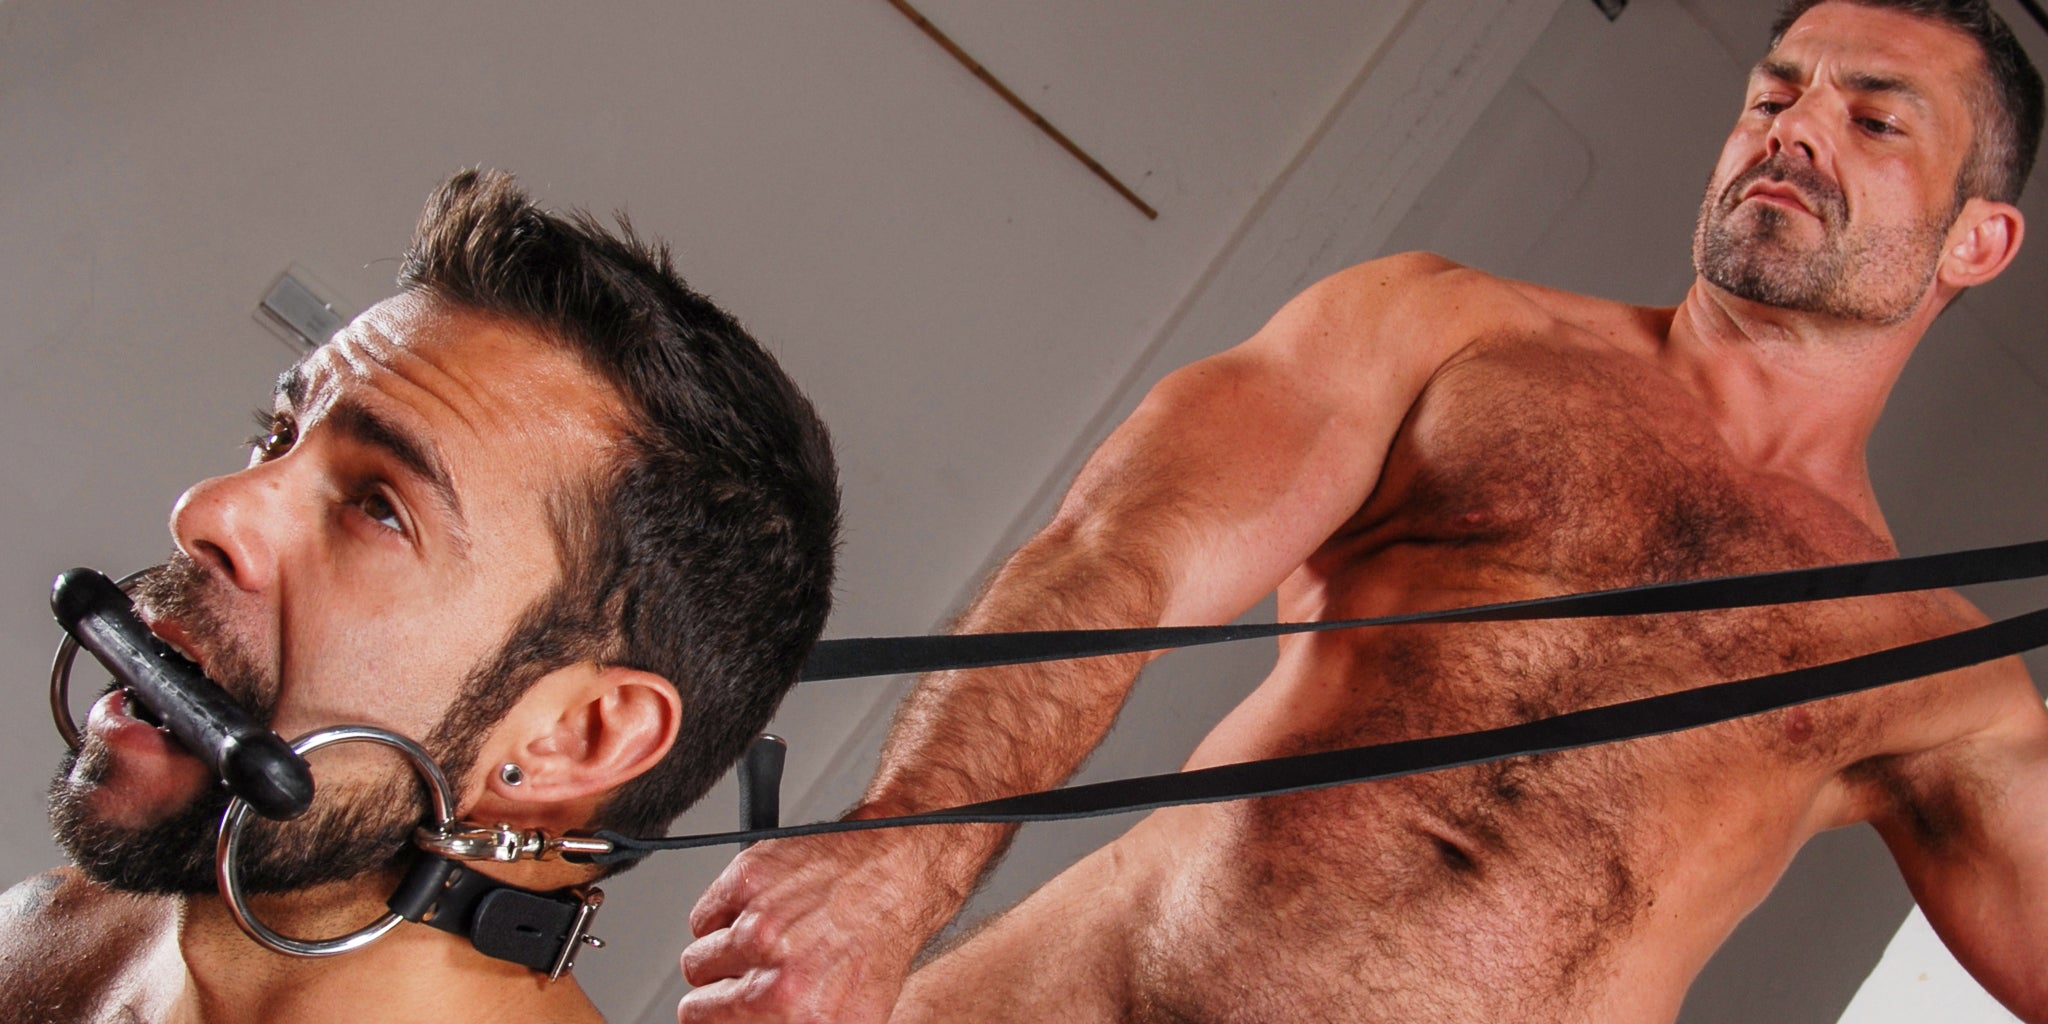 Two men in a bondage scene with one man wearing a rubber bit gag in his mouth and the other man holding black leather leashes. Male Stockroom Sale 2021.